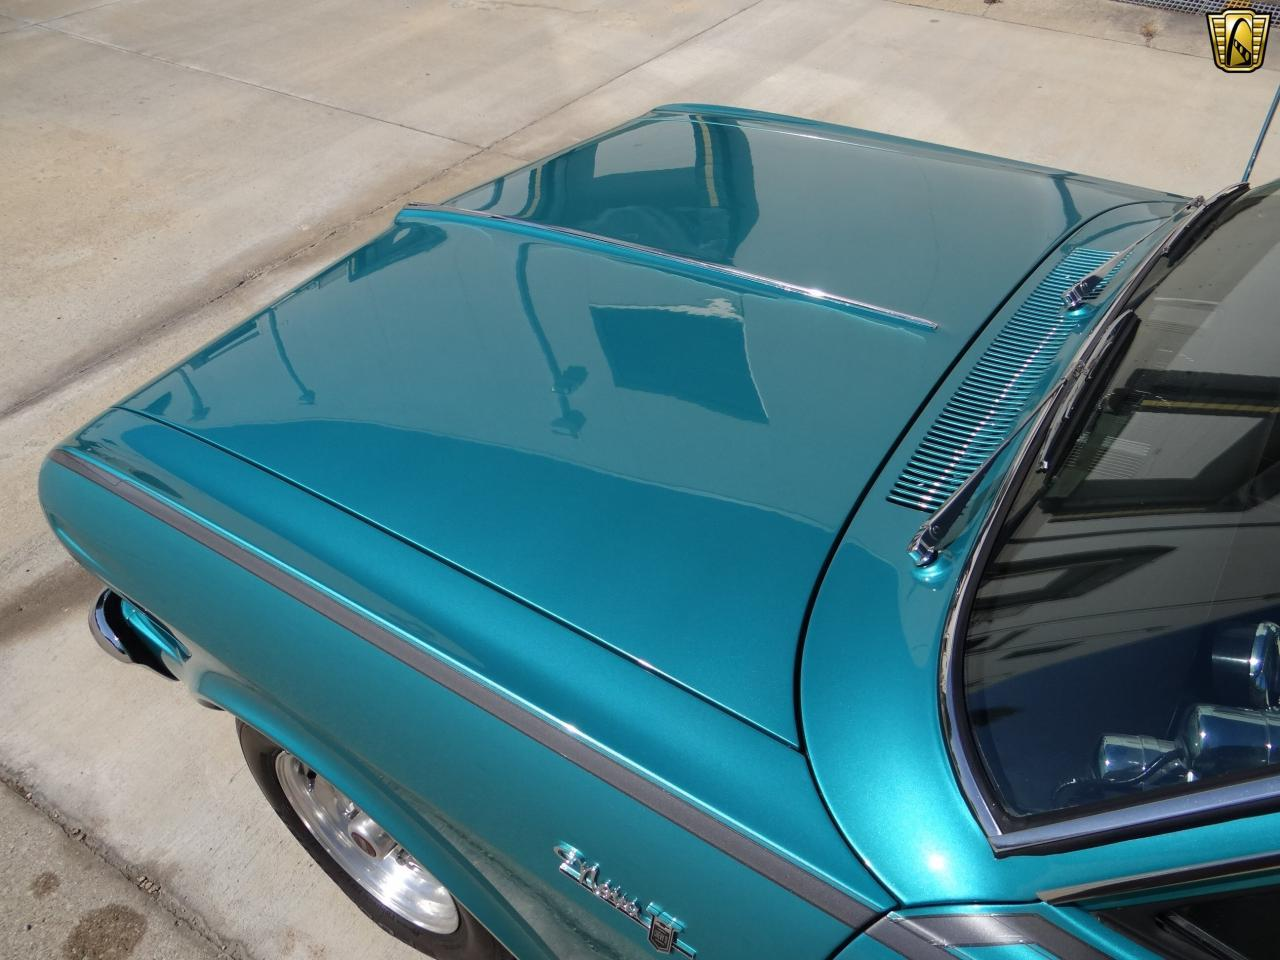 Large Picture of Classic 1964 Chevrolet Nova located in Indianapolis Indiana - $23,995.00 Offered by Gateway Classic Cars - Indianapolis - KEDU